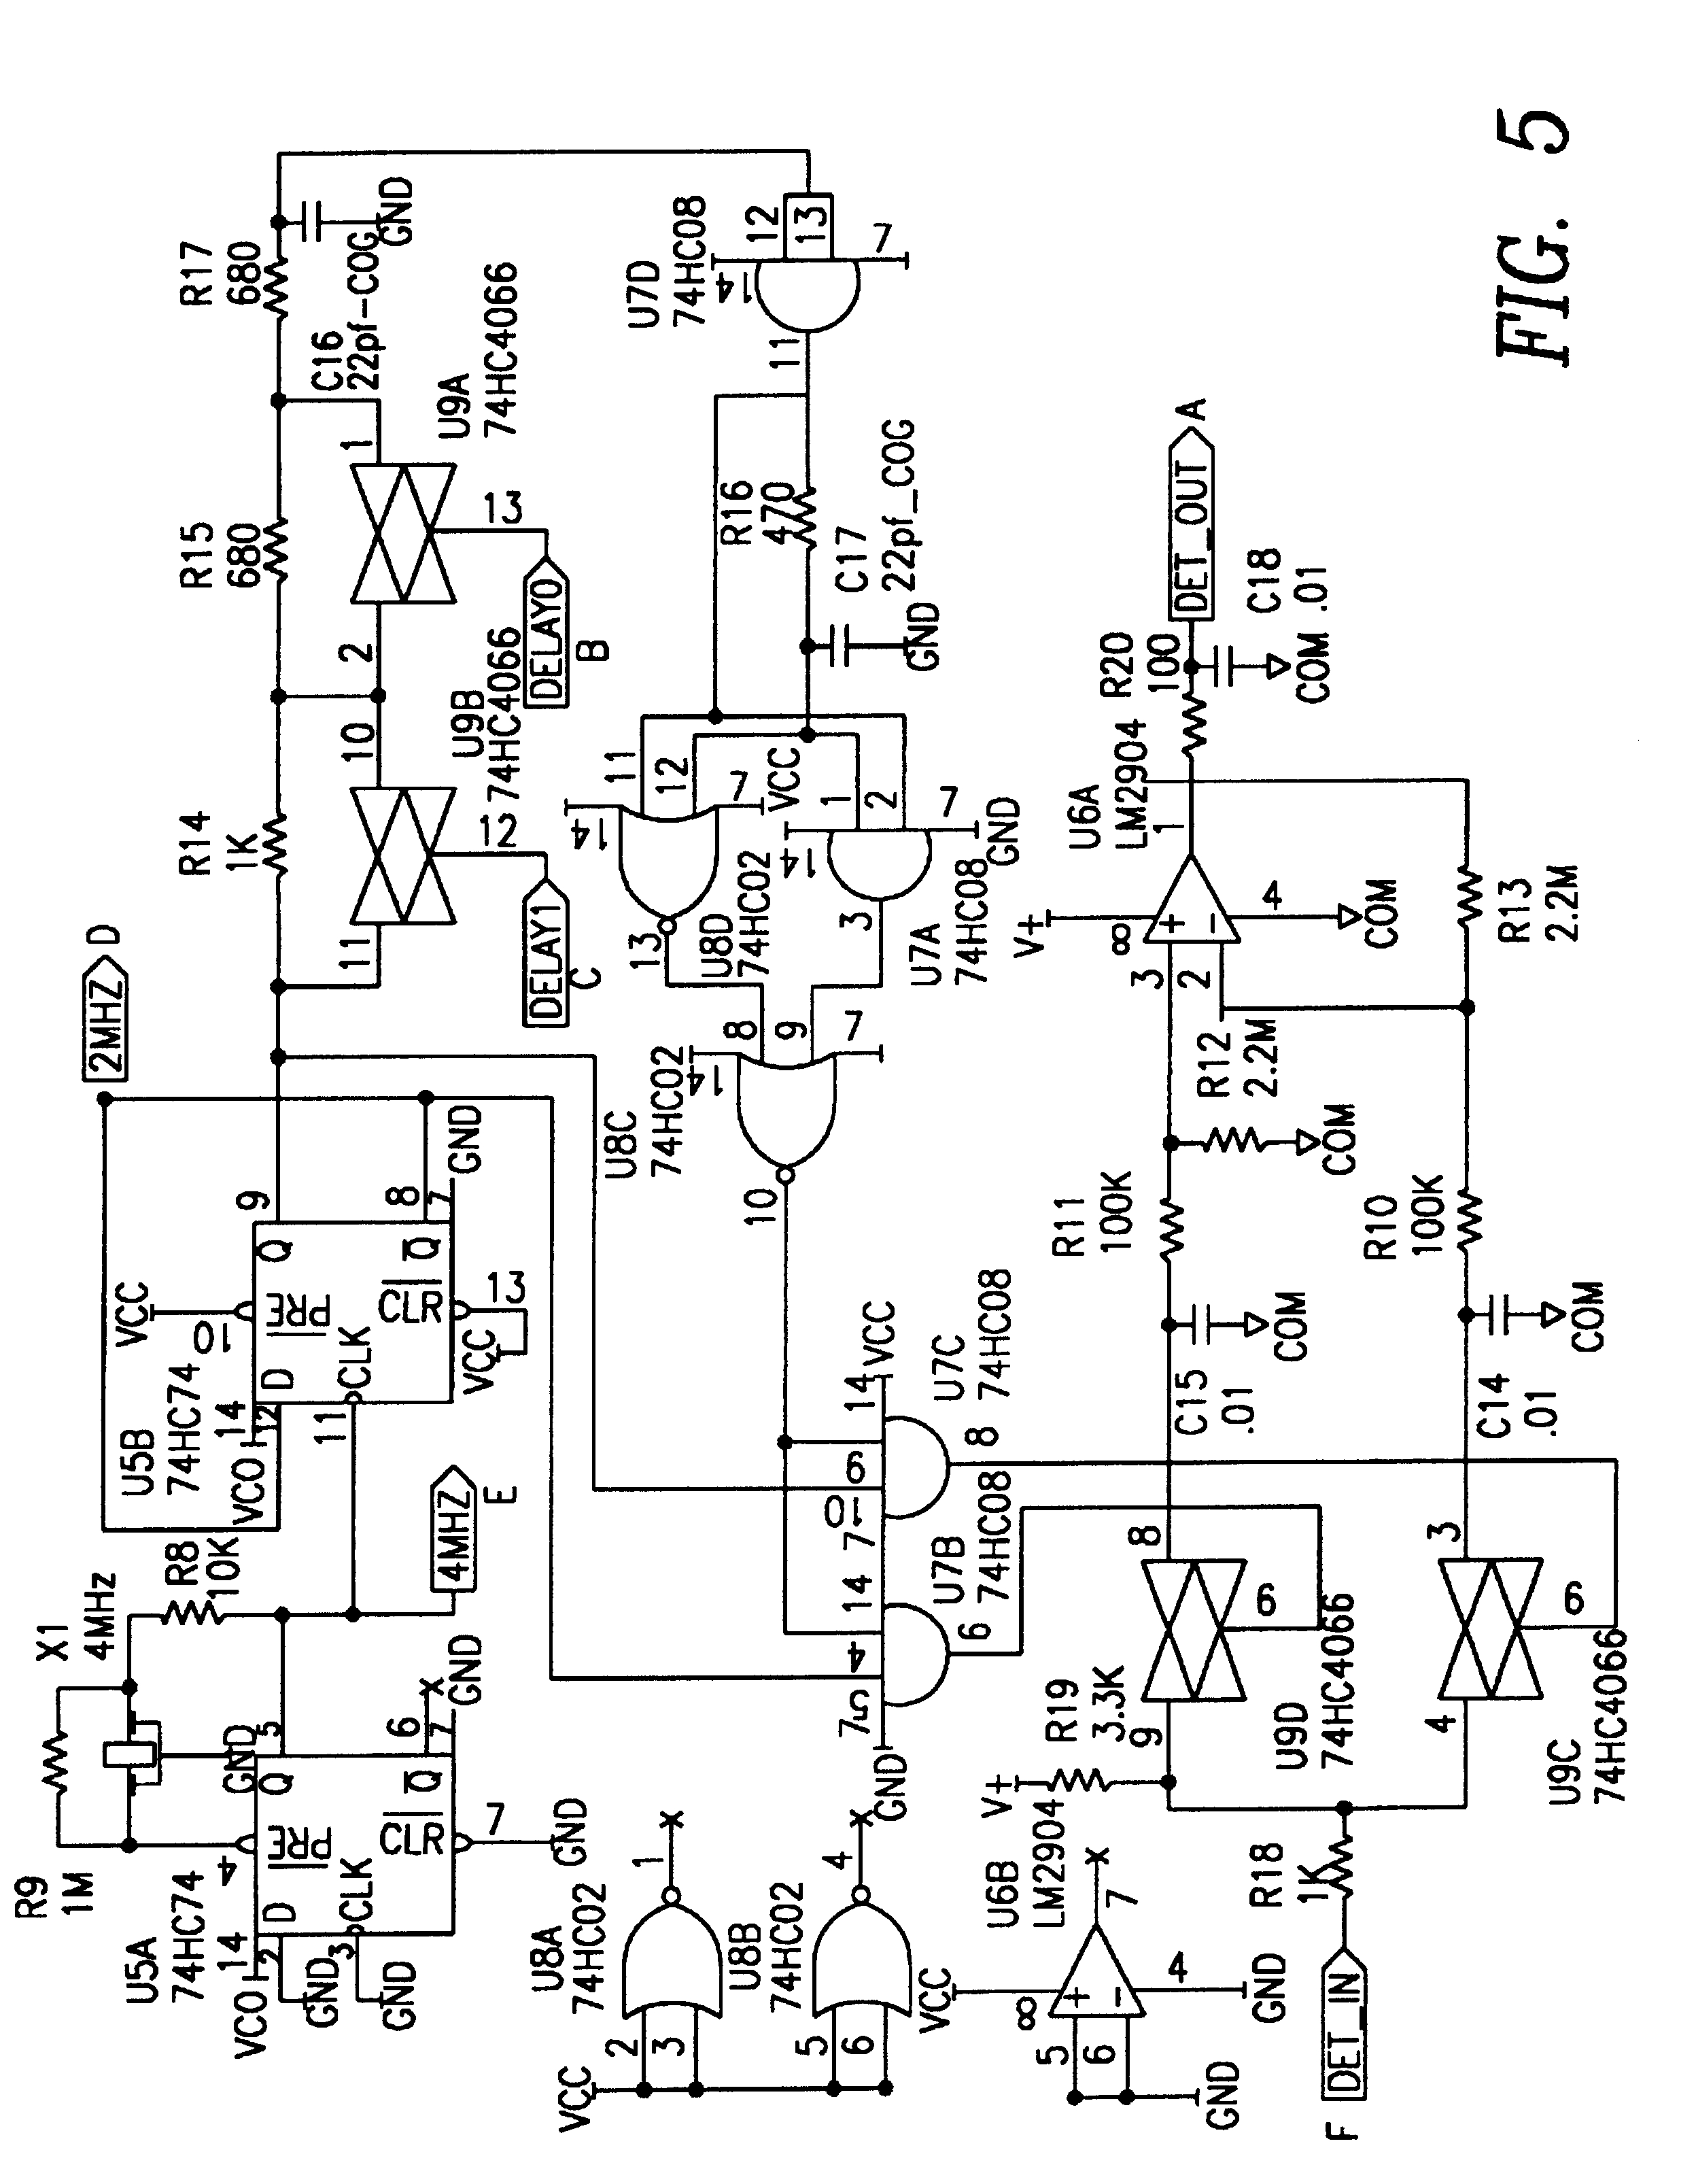 Wiring Diagram Garage Heater